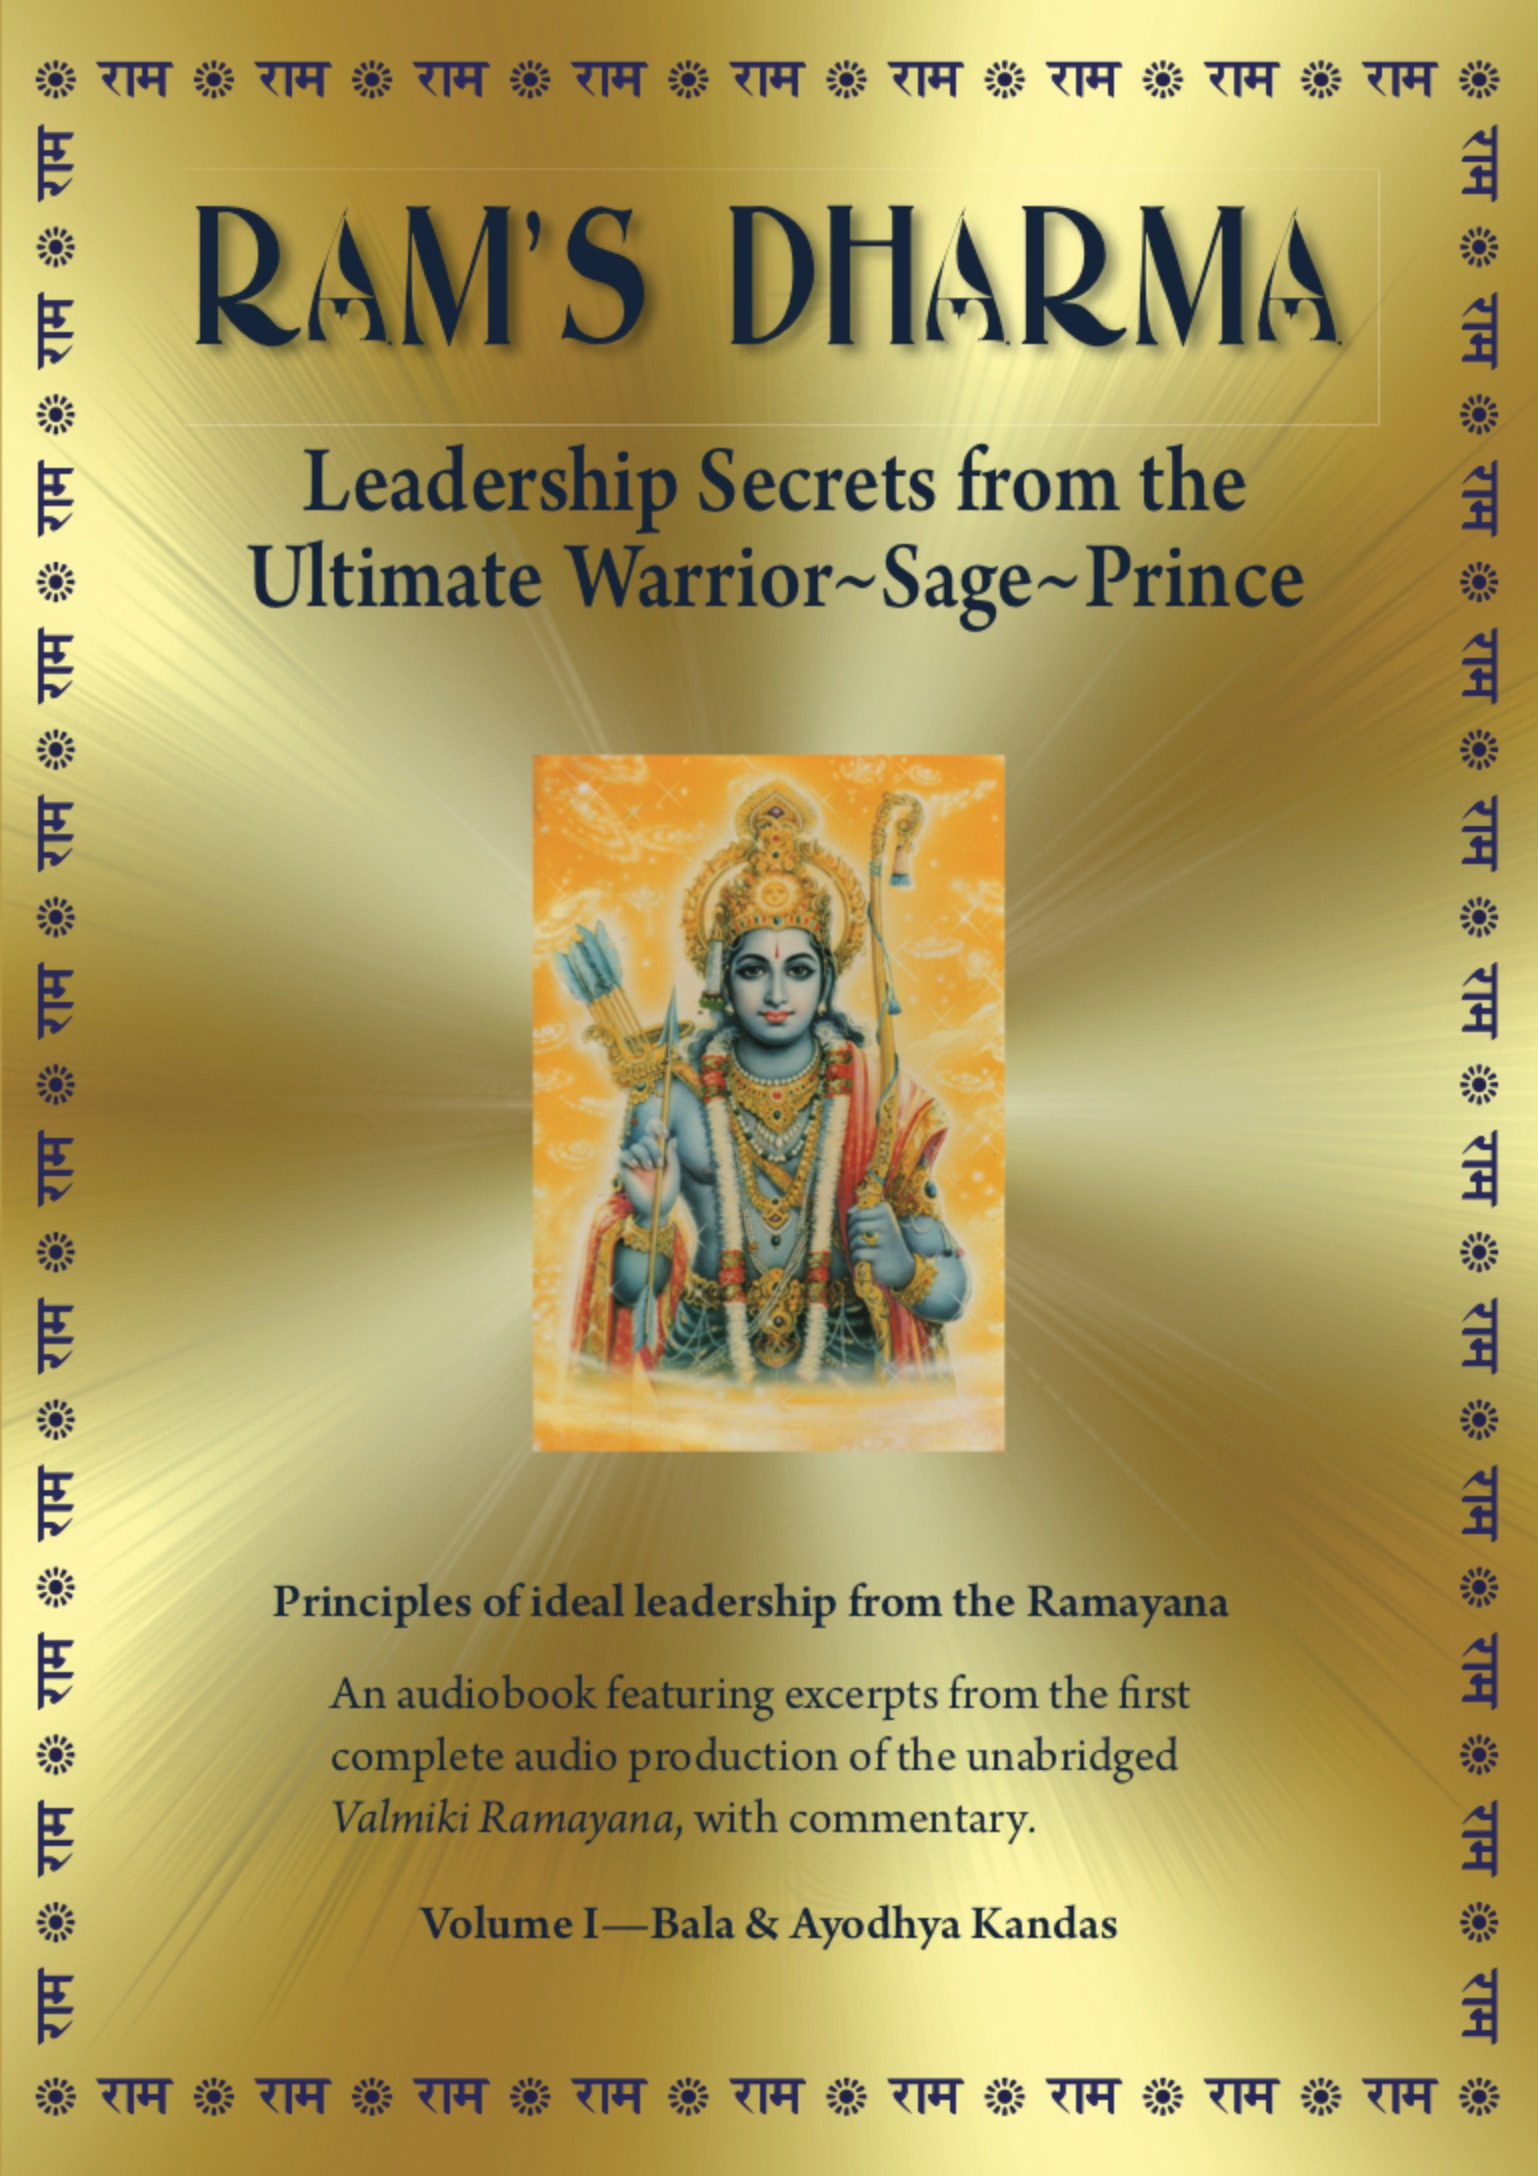 CD FORMAT:   Ram's Dharma ~ Leadership Secrets From the Ultimate Warrior~Sage~Prince